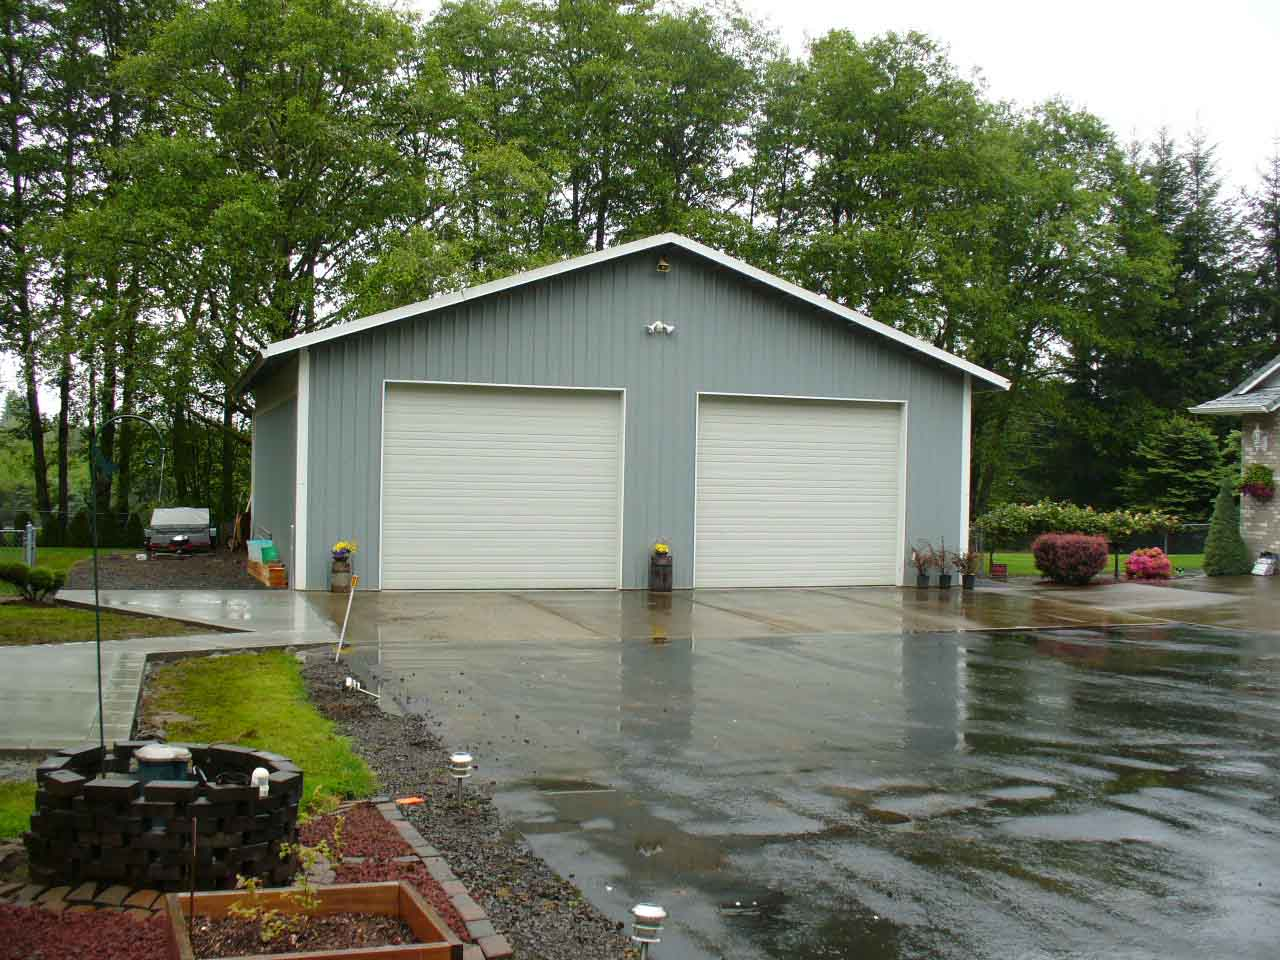 36'x36'x12' pole building shop